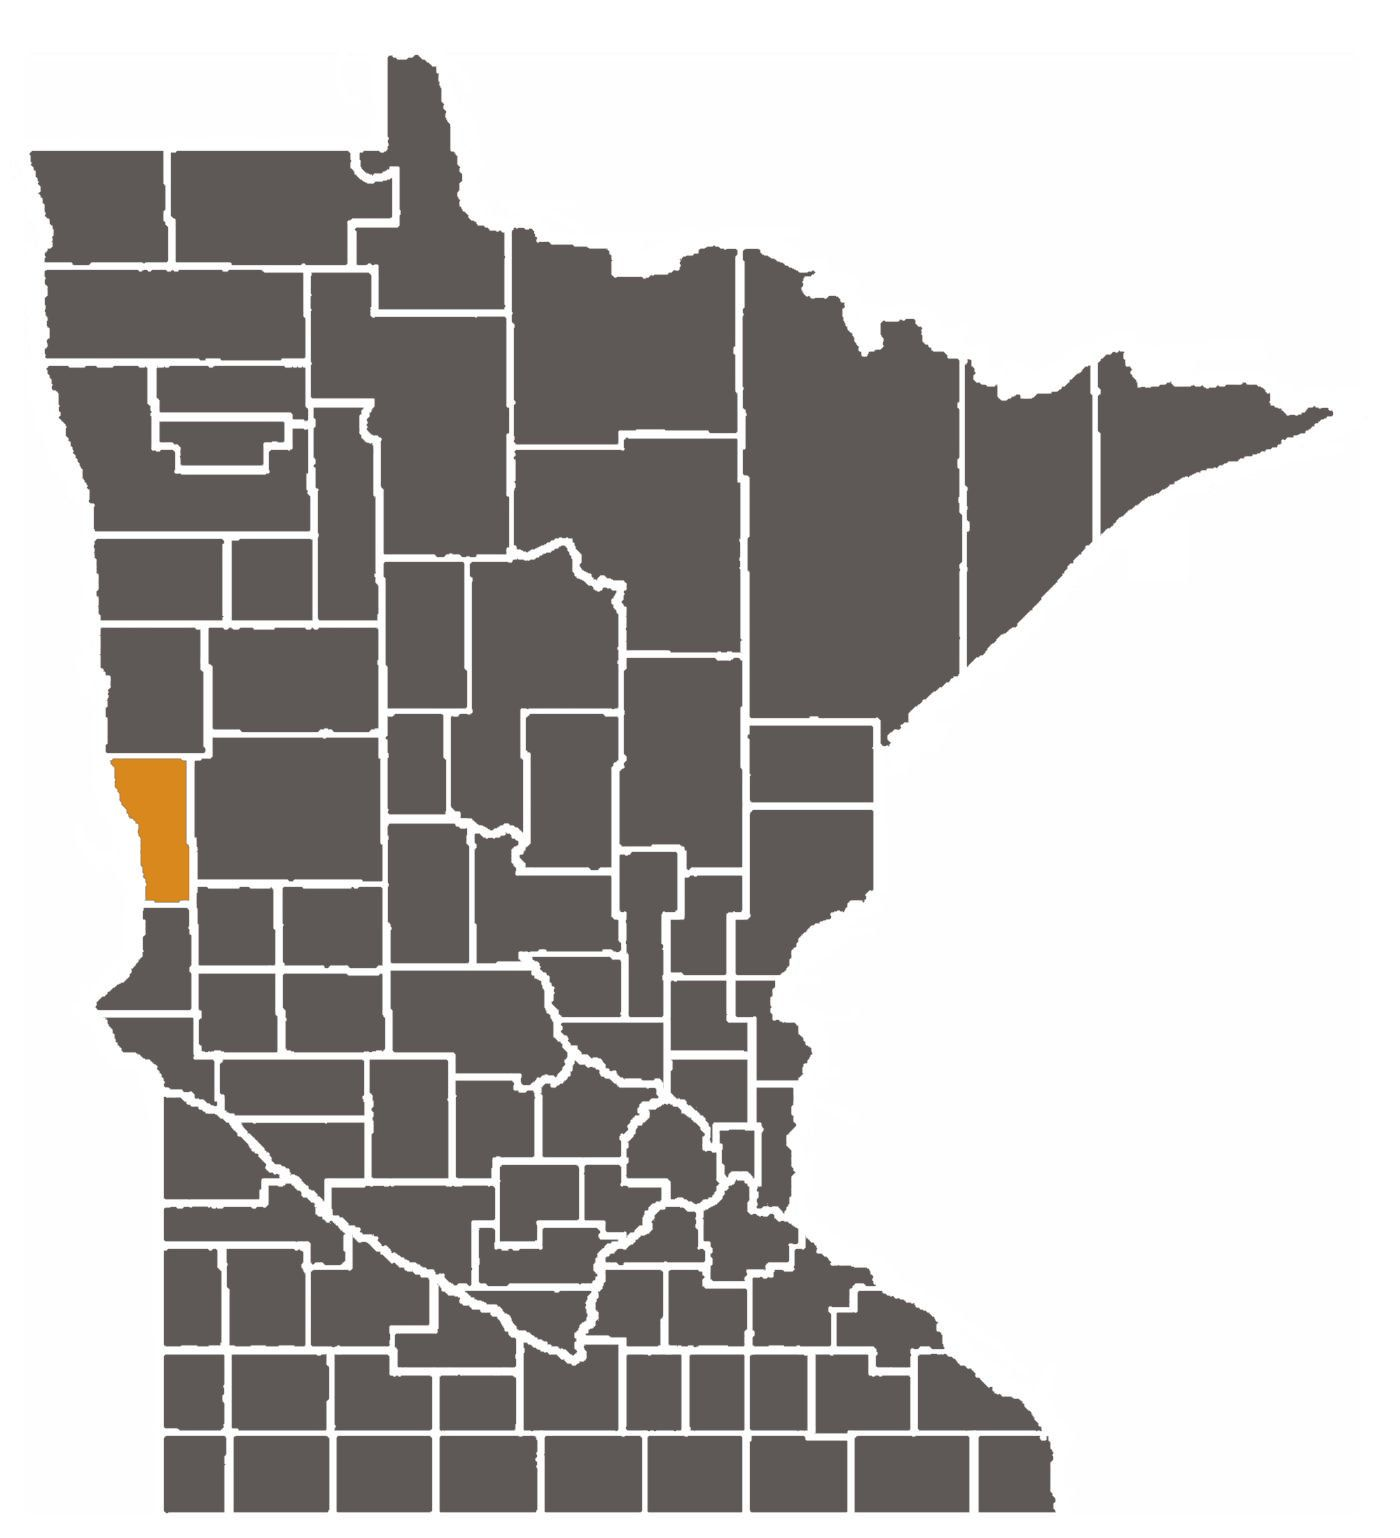 Minnesota map with Wilkin County highlighted.